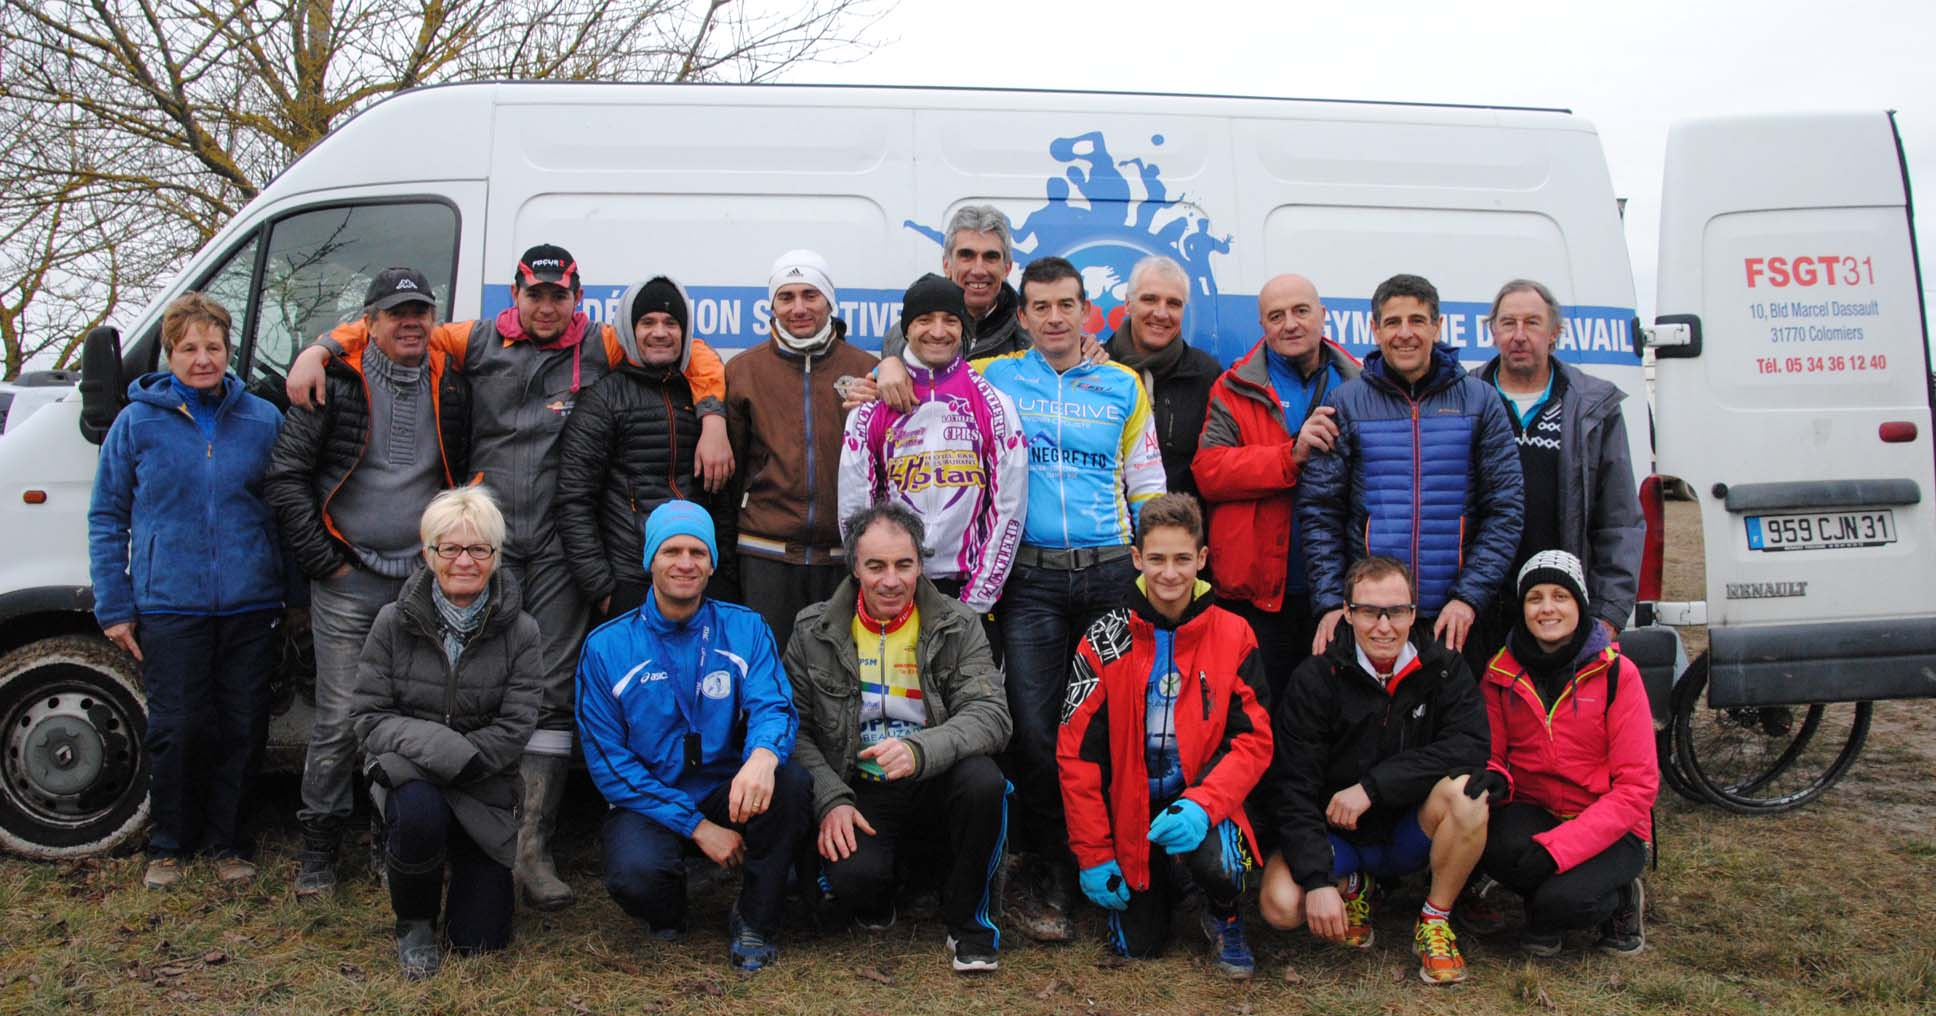 DELEGATION 31 AU NATIONAL CYCLO CROSS 2016